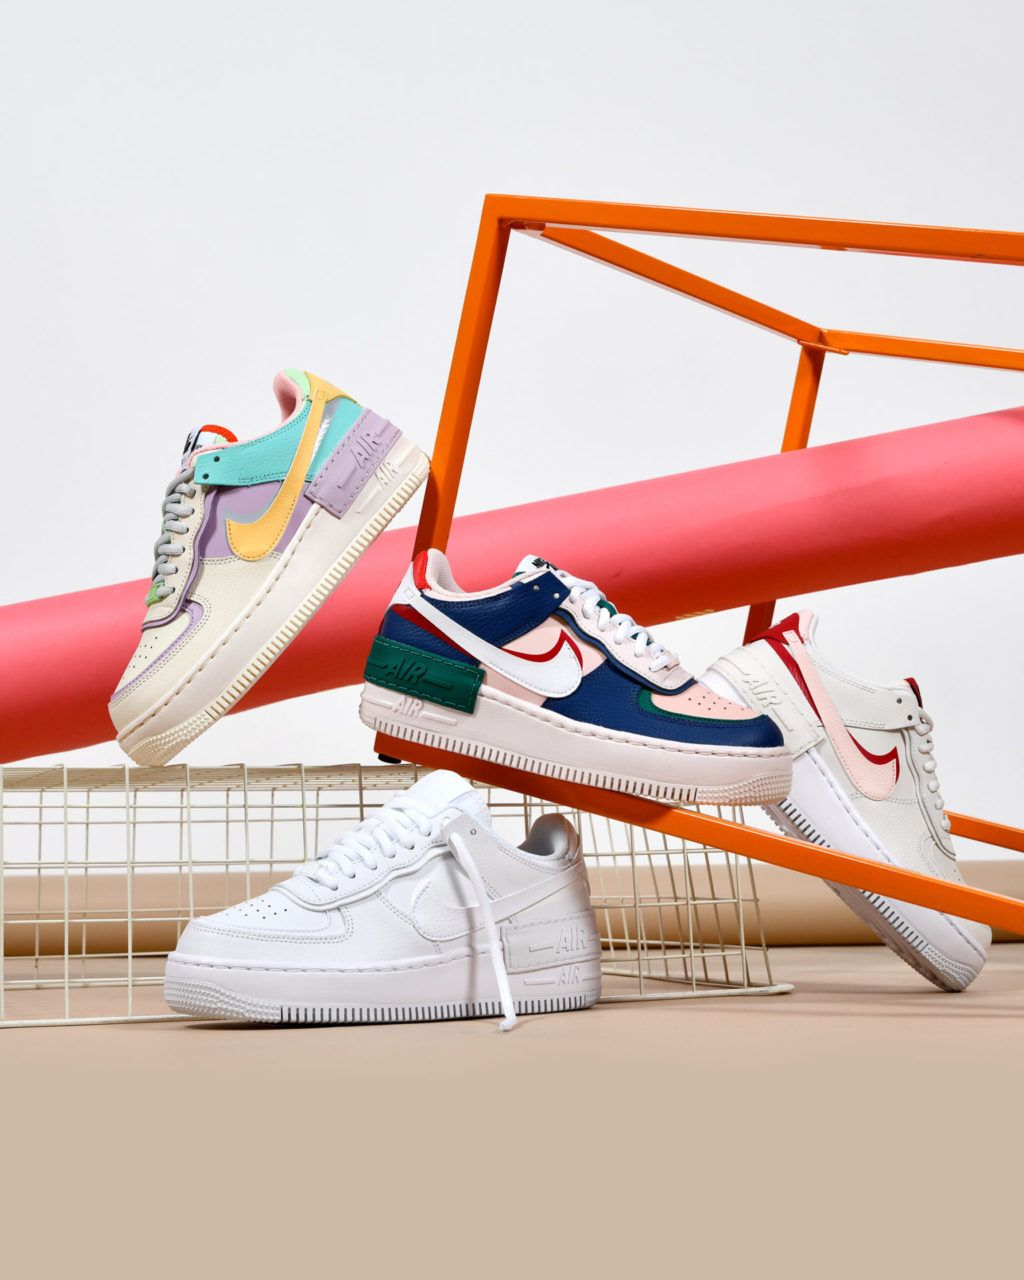 Nike Air Force 1 Shadow Pack sneakers. | Chaussures et chaussettes ...